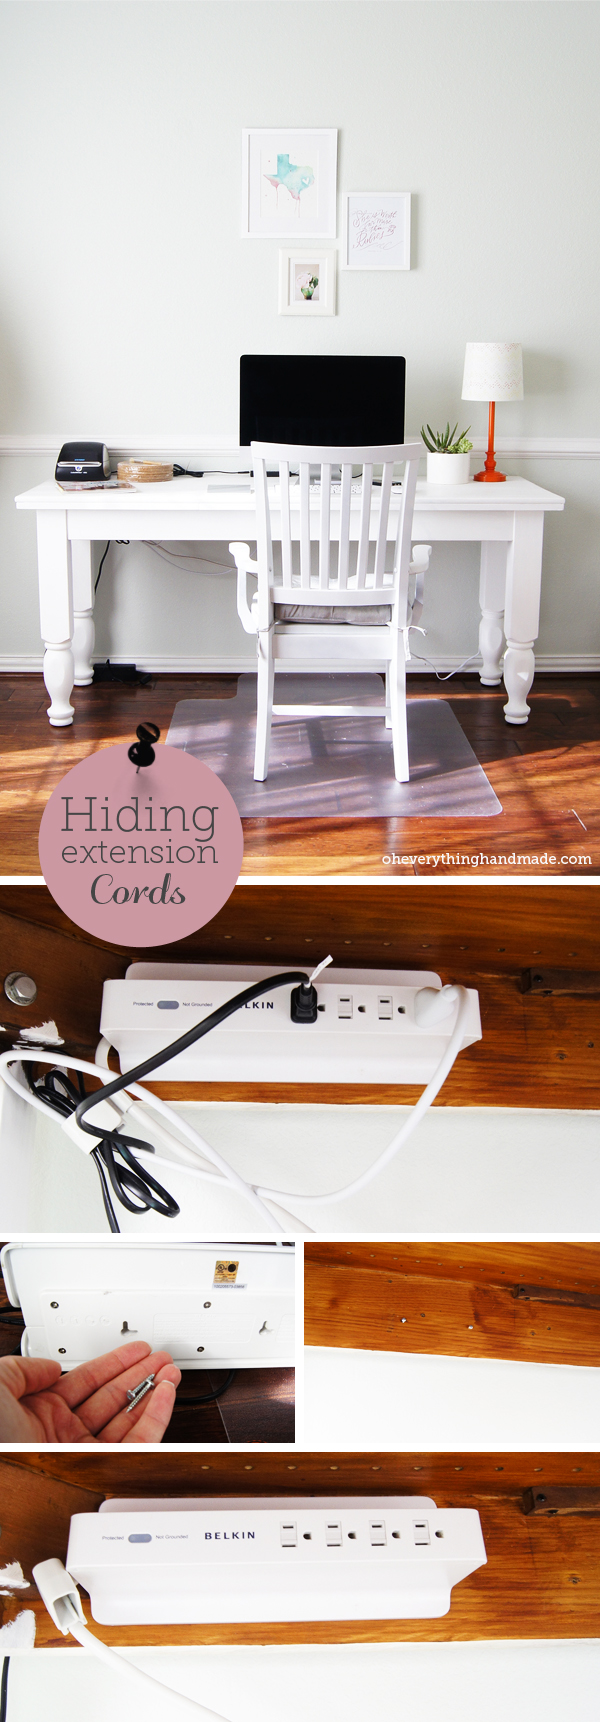 DIY // Hiding extension cords